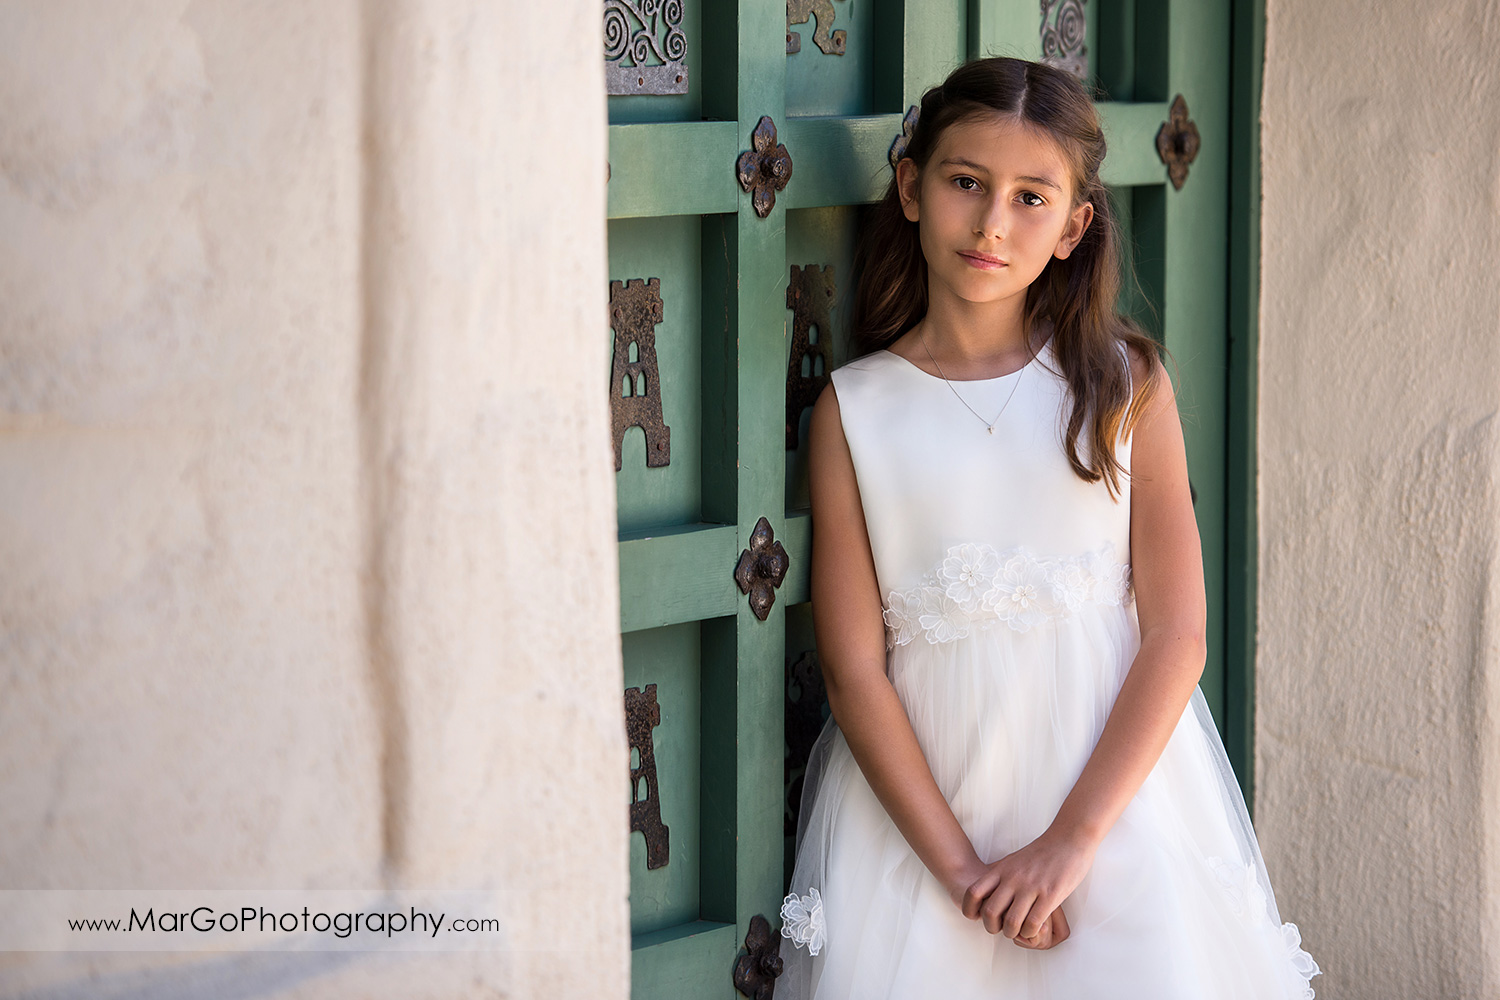 portrait of first communion girl in white dress in front of green door at Cafe Wisteria in Menlo Park